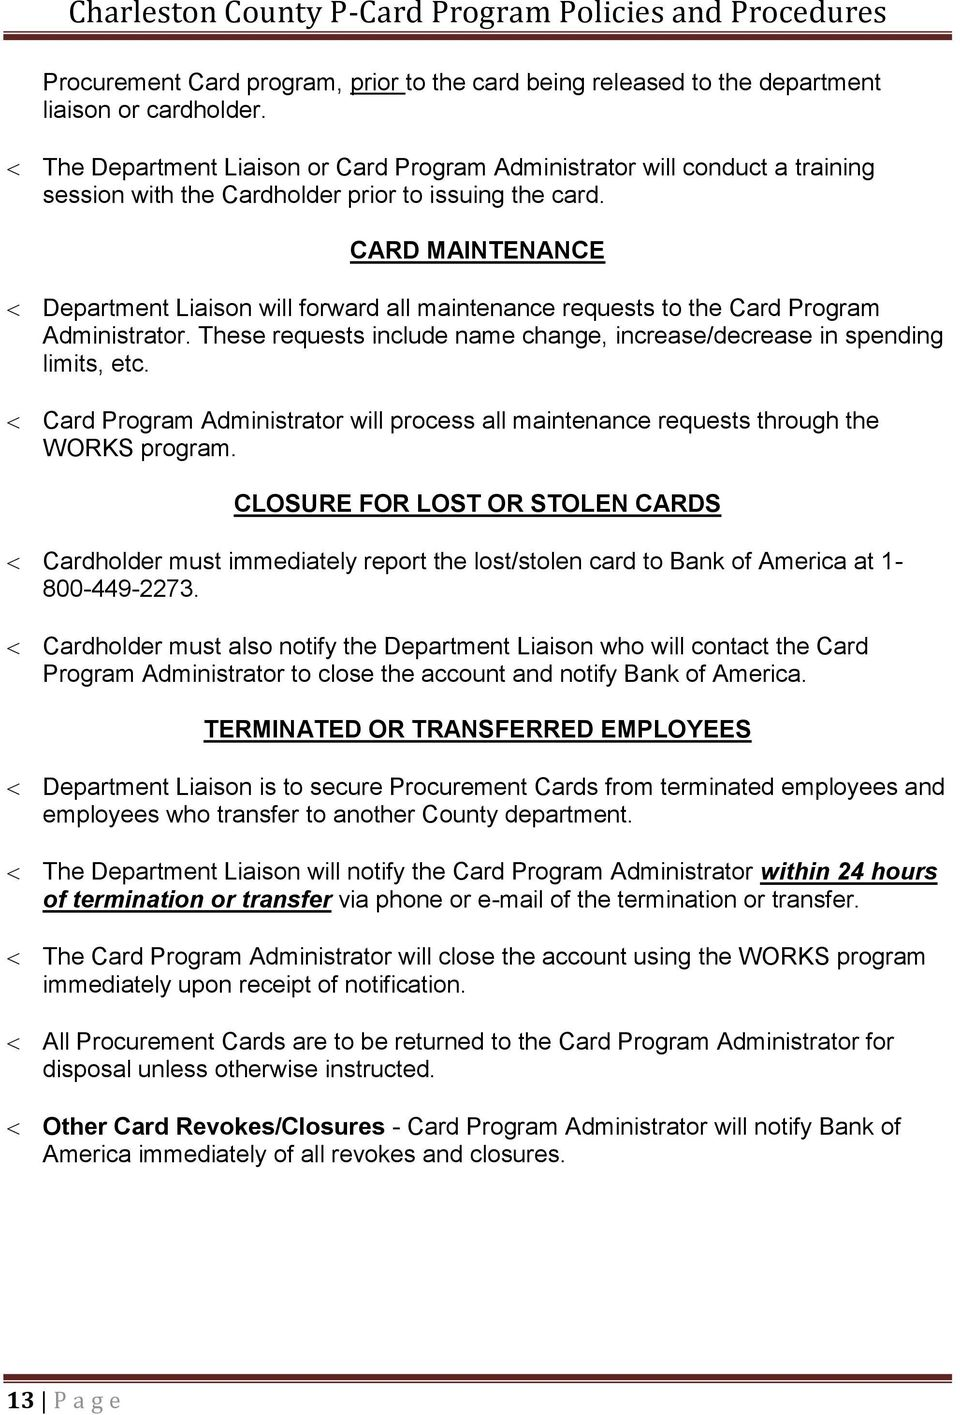 CARD MAINTENANCE Department Liaison will forward all maintenance requests to the Card Program Administrator. These requests include name change, increase/decrease in spending limits, etc.